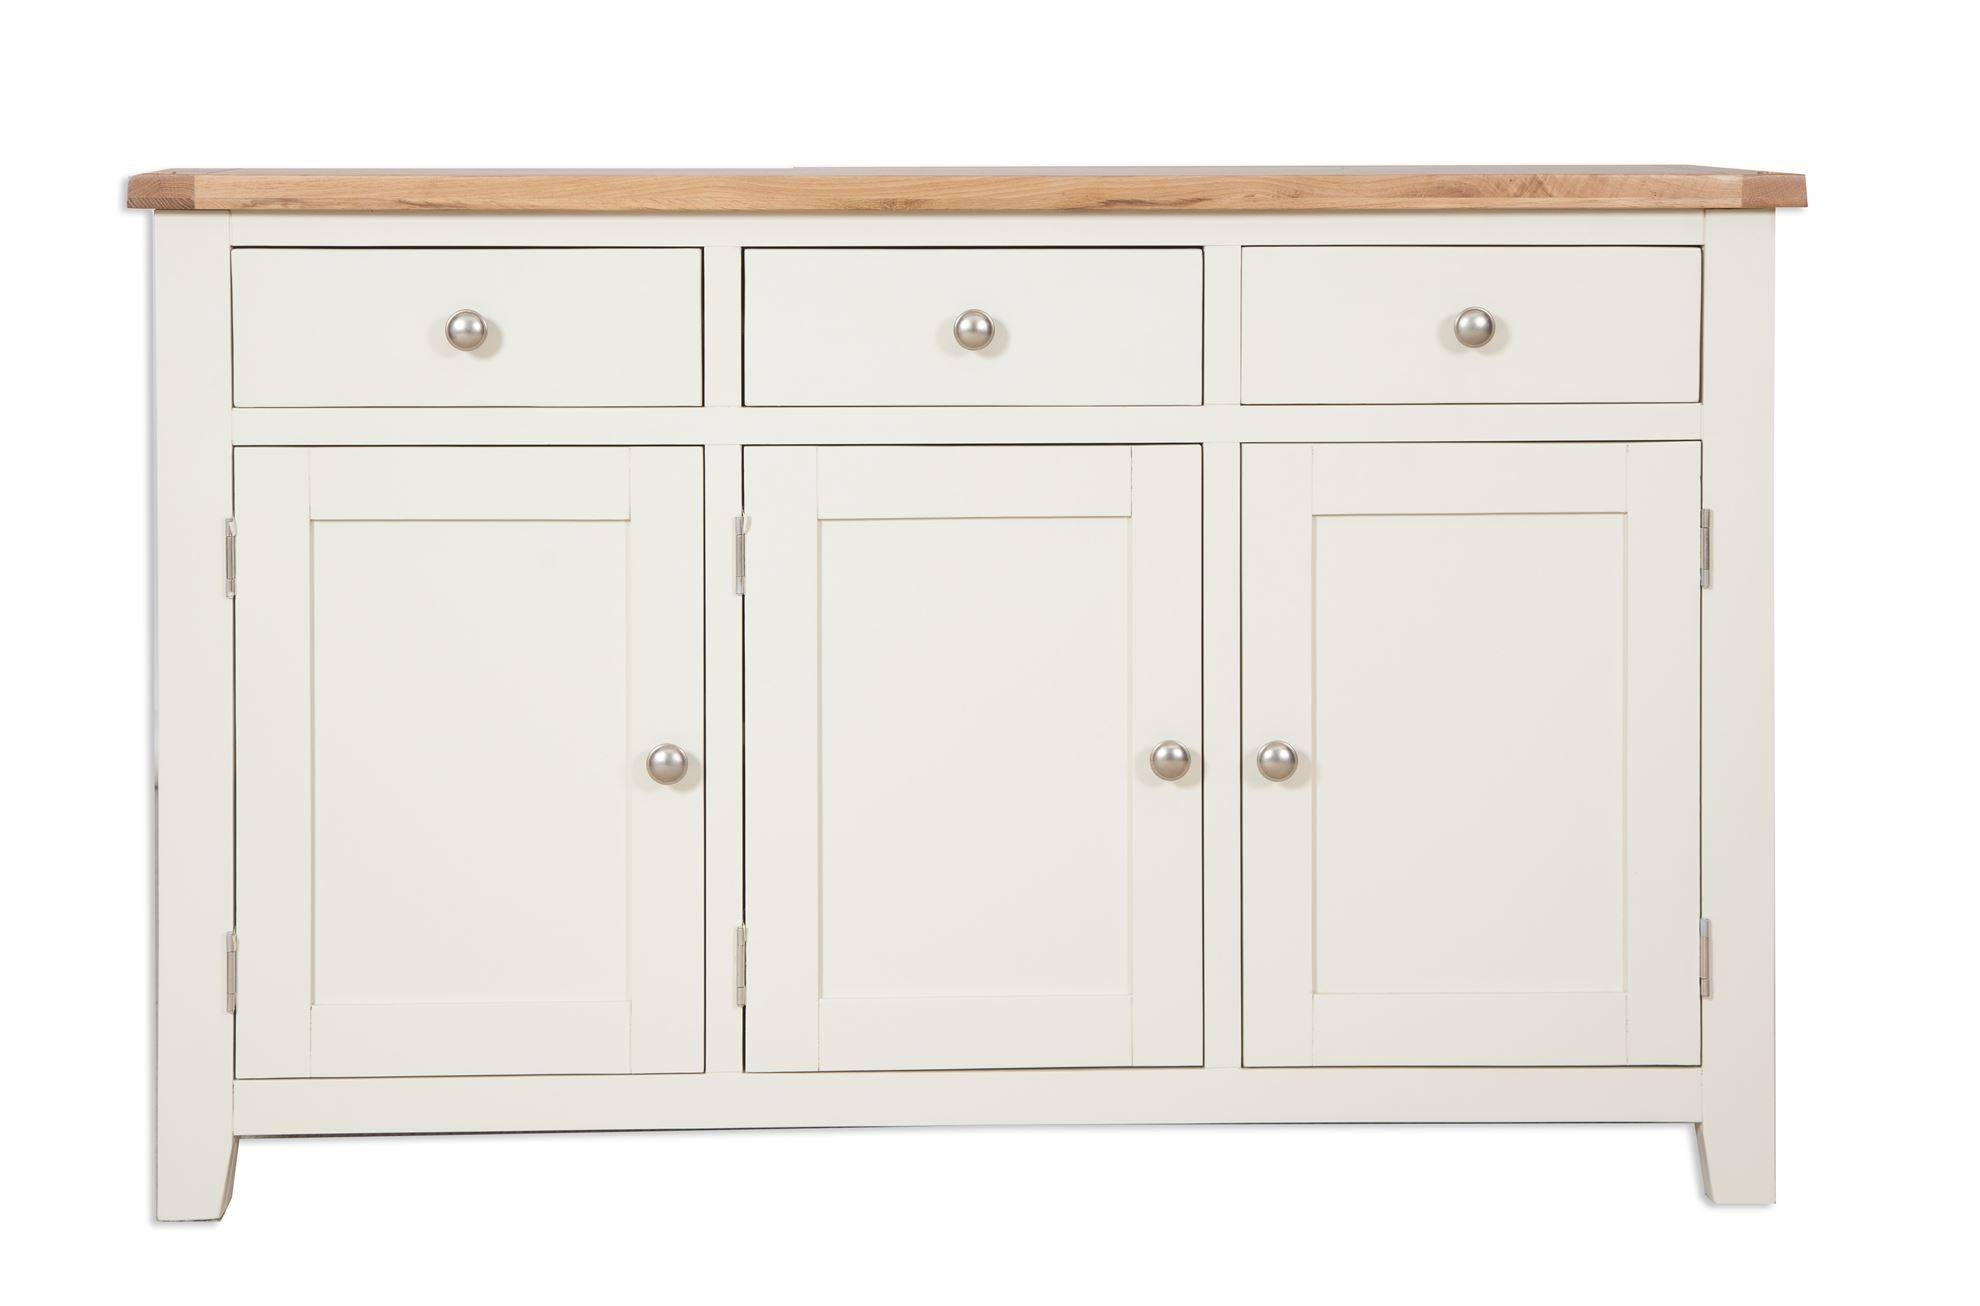 Painted Ivory Three Drawer Sideboard - Cambridge Home & Garden inside Cream and Oak Sideboards (Image 10 of 15)